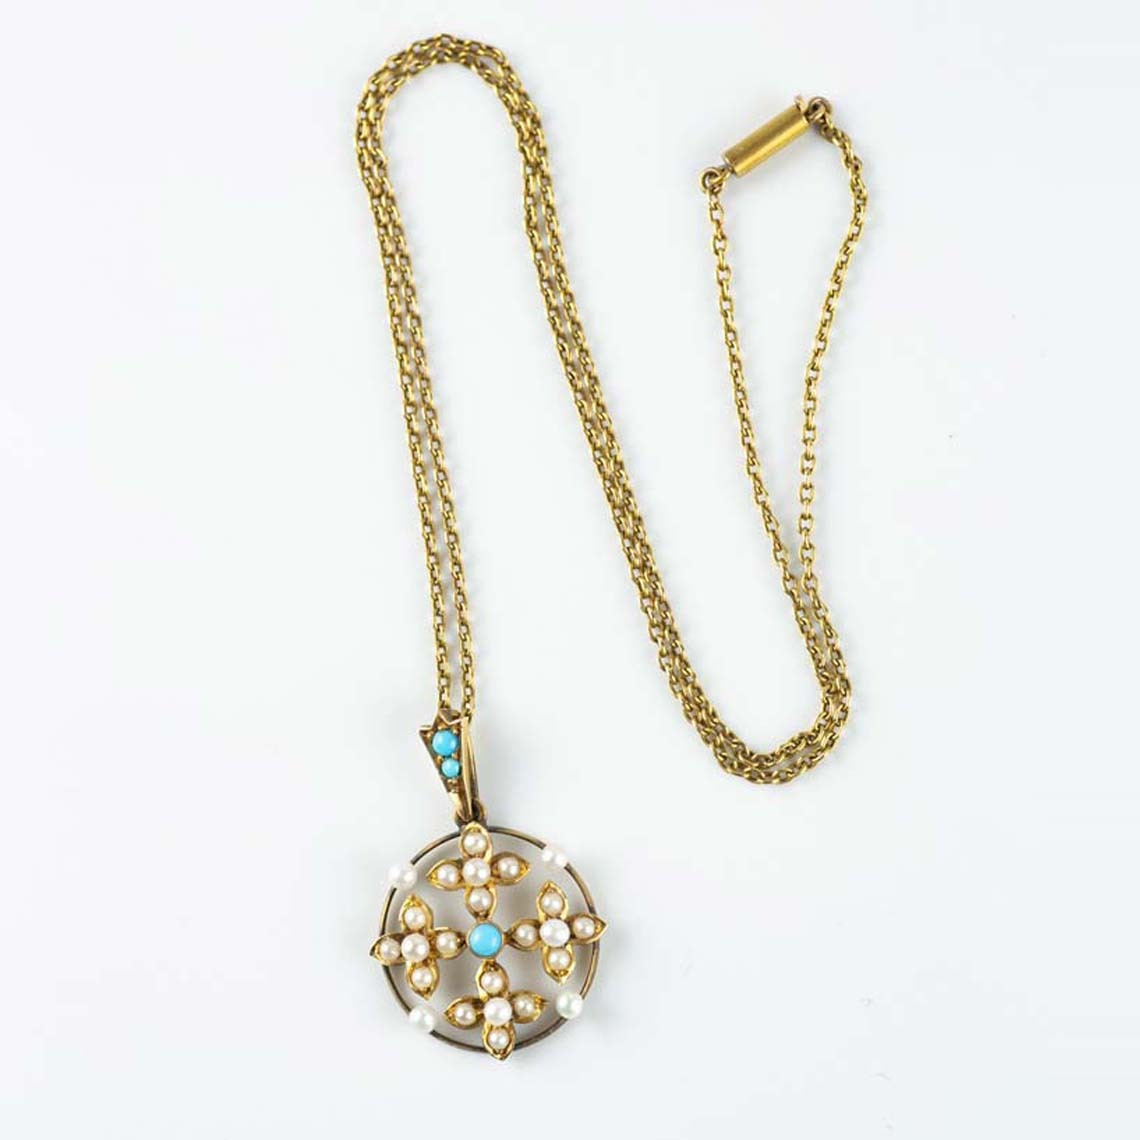 Vintage pearl and turquoise  pendant